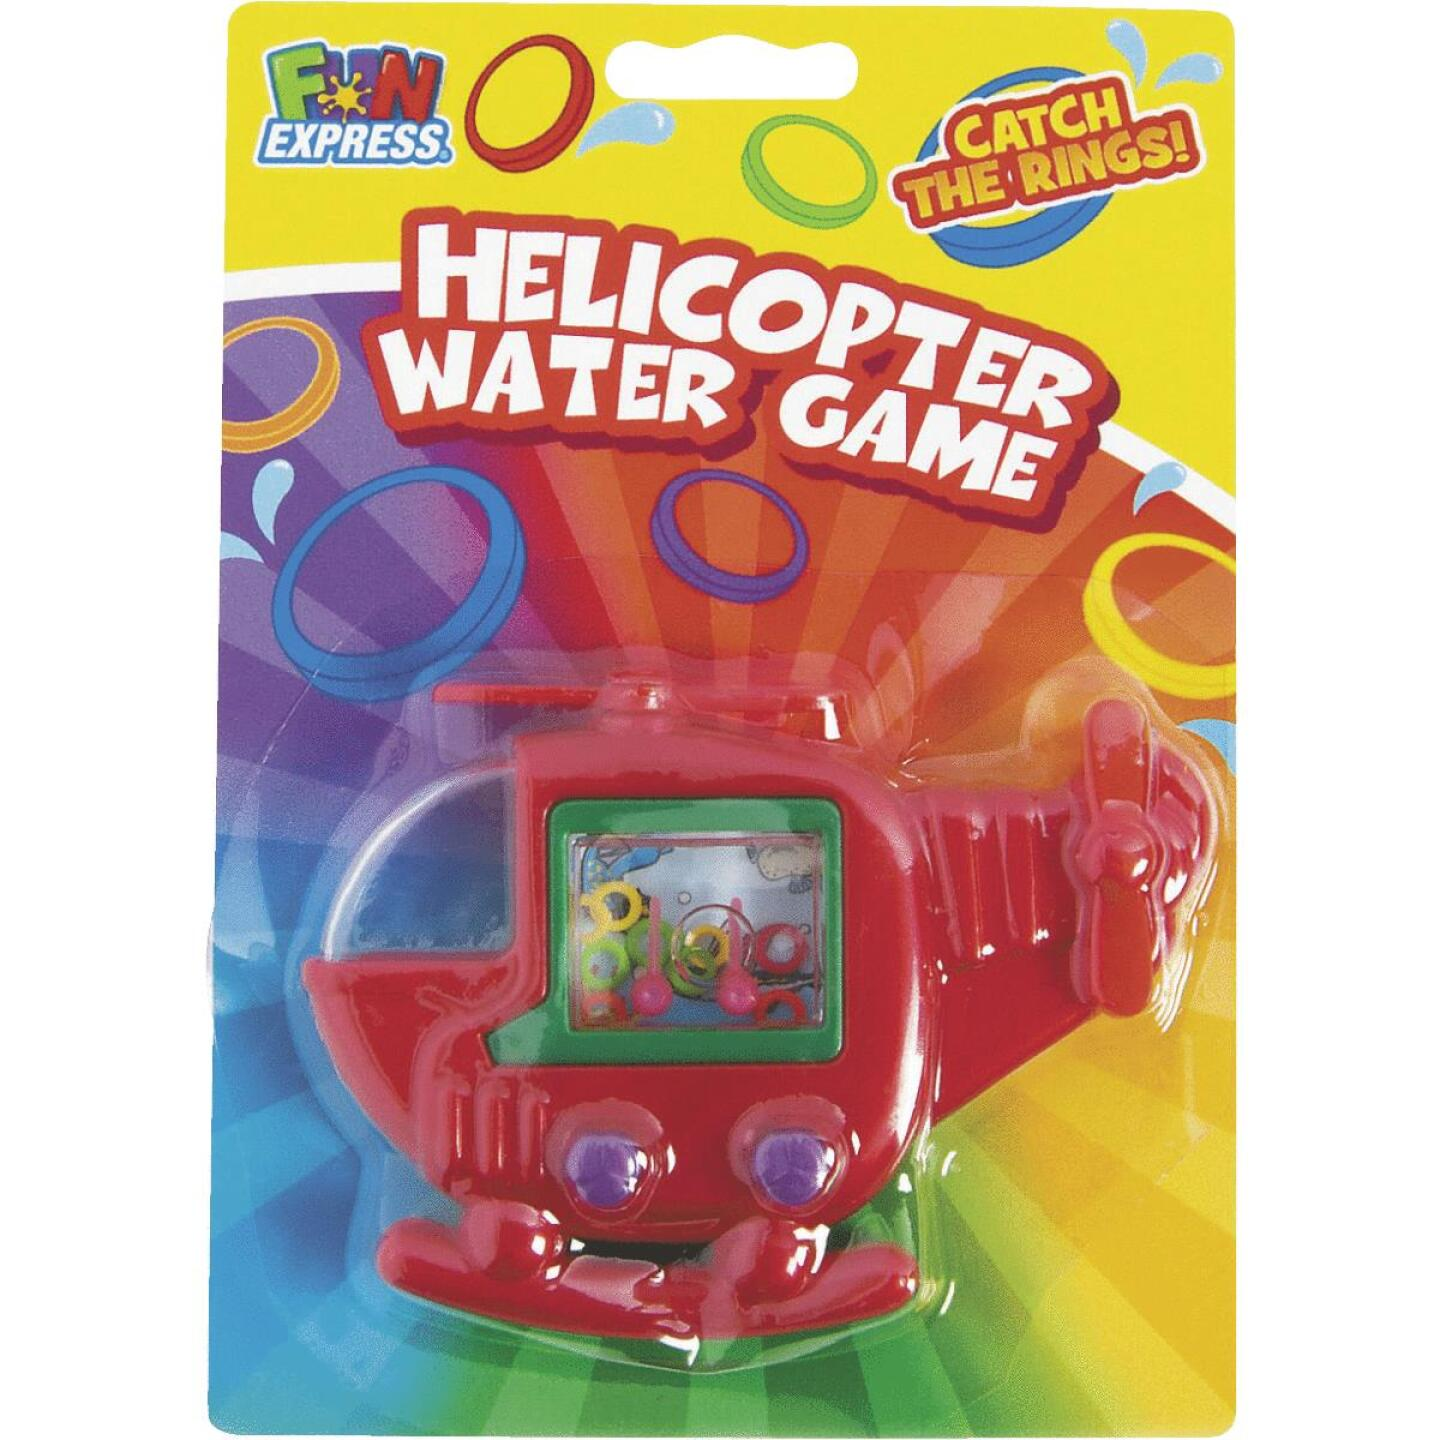 Fun Express Helicopter Water Game Image 1